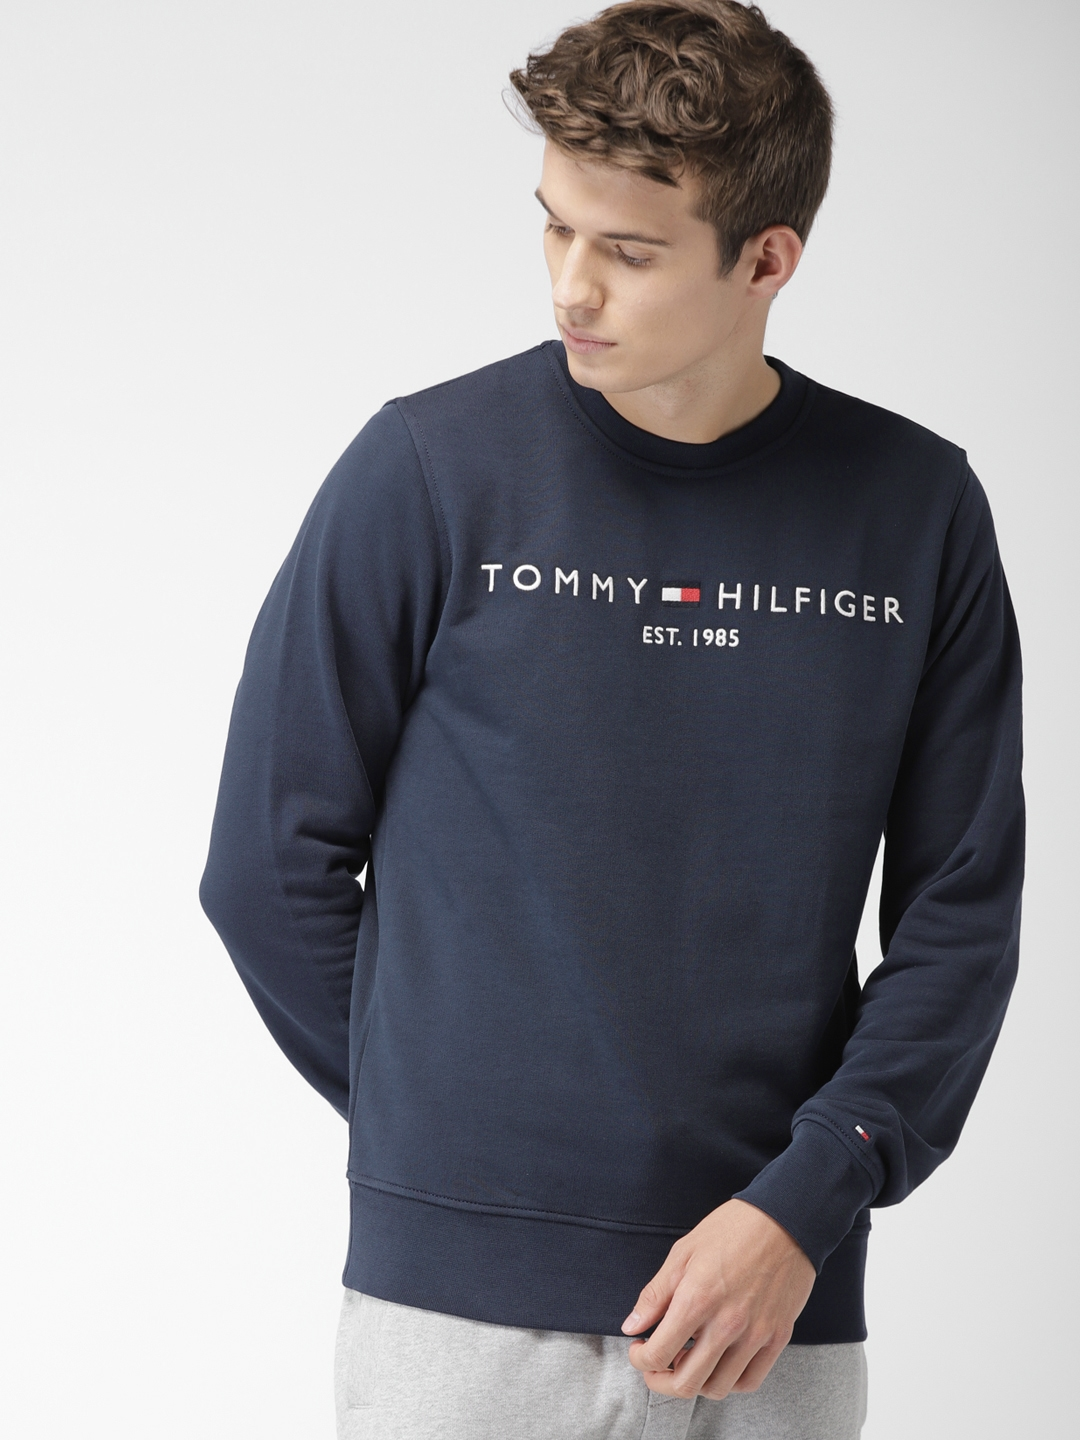 3913a9d26 Buy Tommy Hilfiger Men Navy Self Design Sweatshirt - Sweatshirts for ...